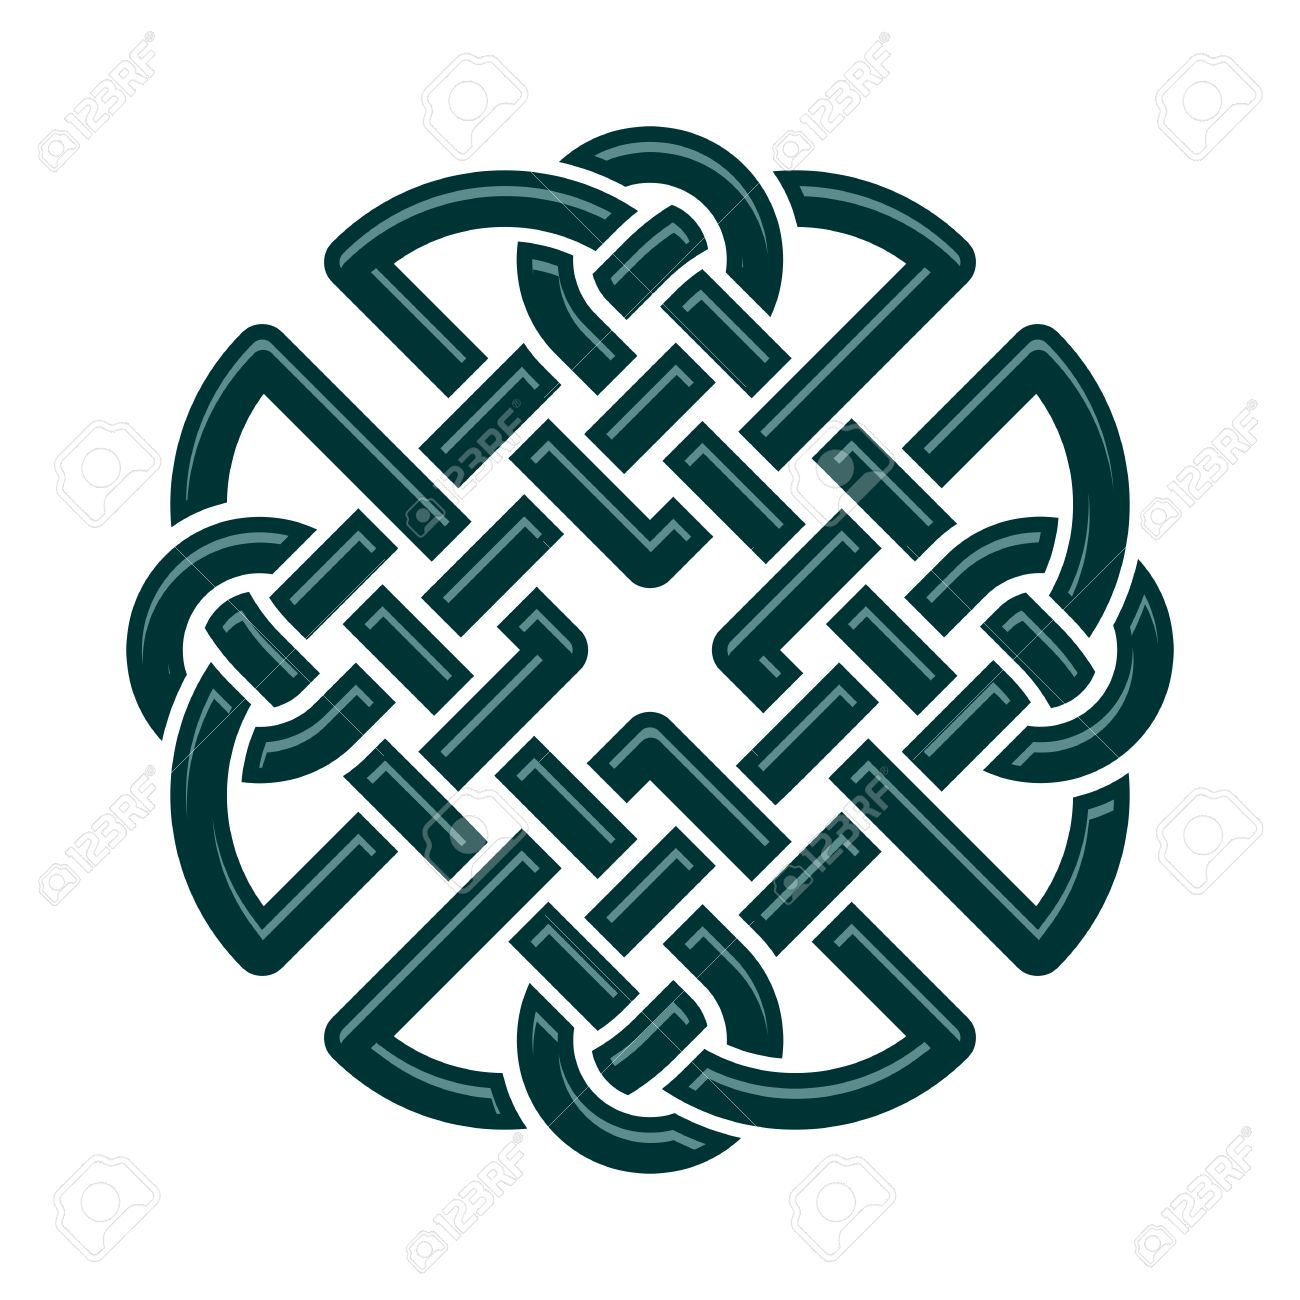 Cherokee symbol for strength gallery symbol and sign ideas celtic symbol for strength images symbol and sign ideas celtic dara knot symbol of strength isolated buycottarizona